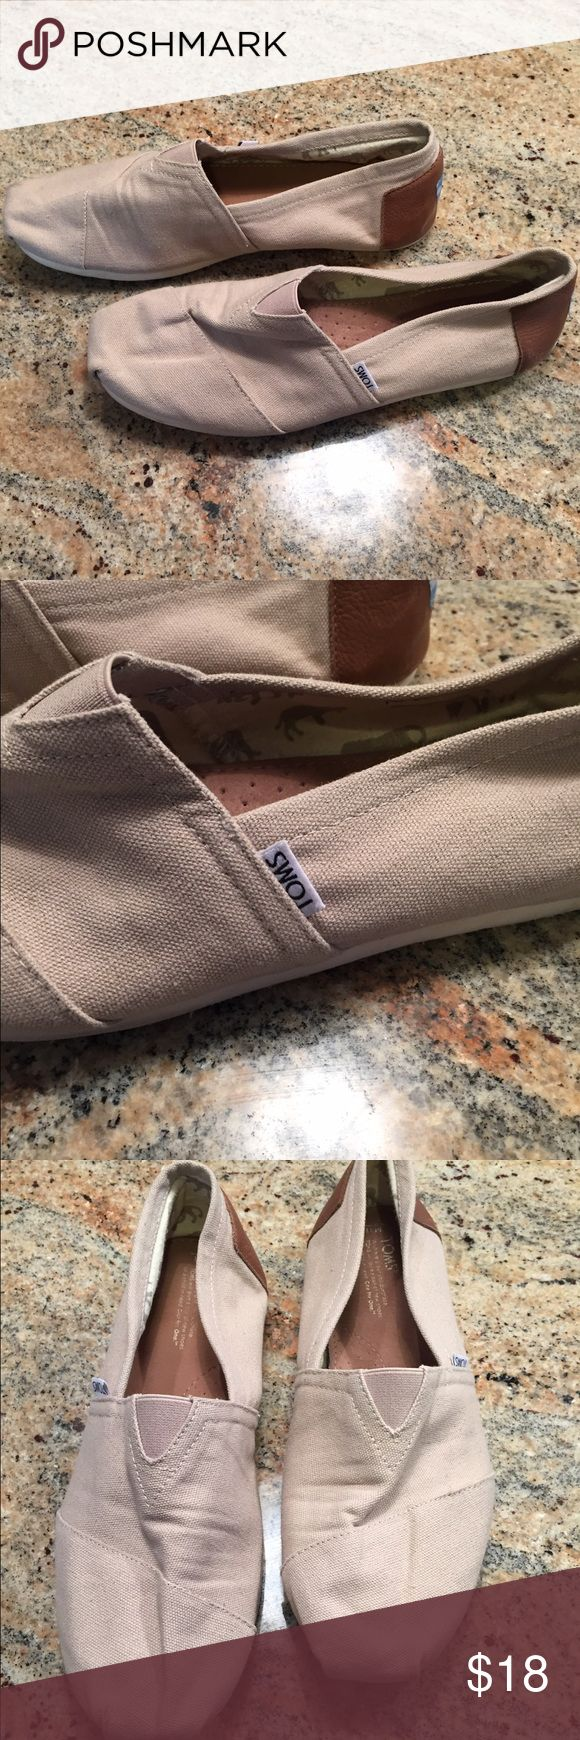 TOMS men's khaki with leather back EUC TOMS men's khaki with leather back EUC worn once or twice open to offers thru offer feature! TOMS Shoes